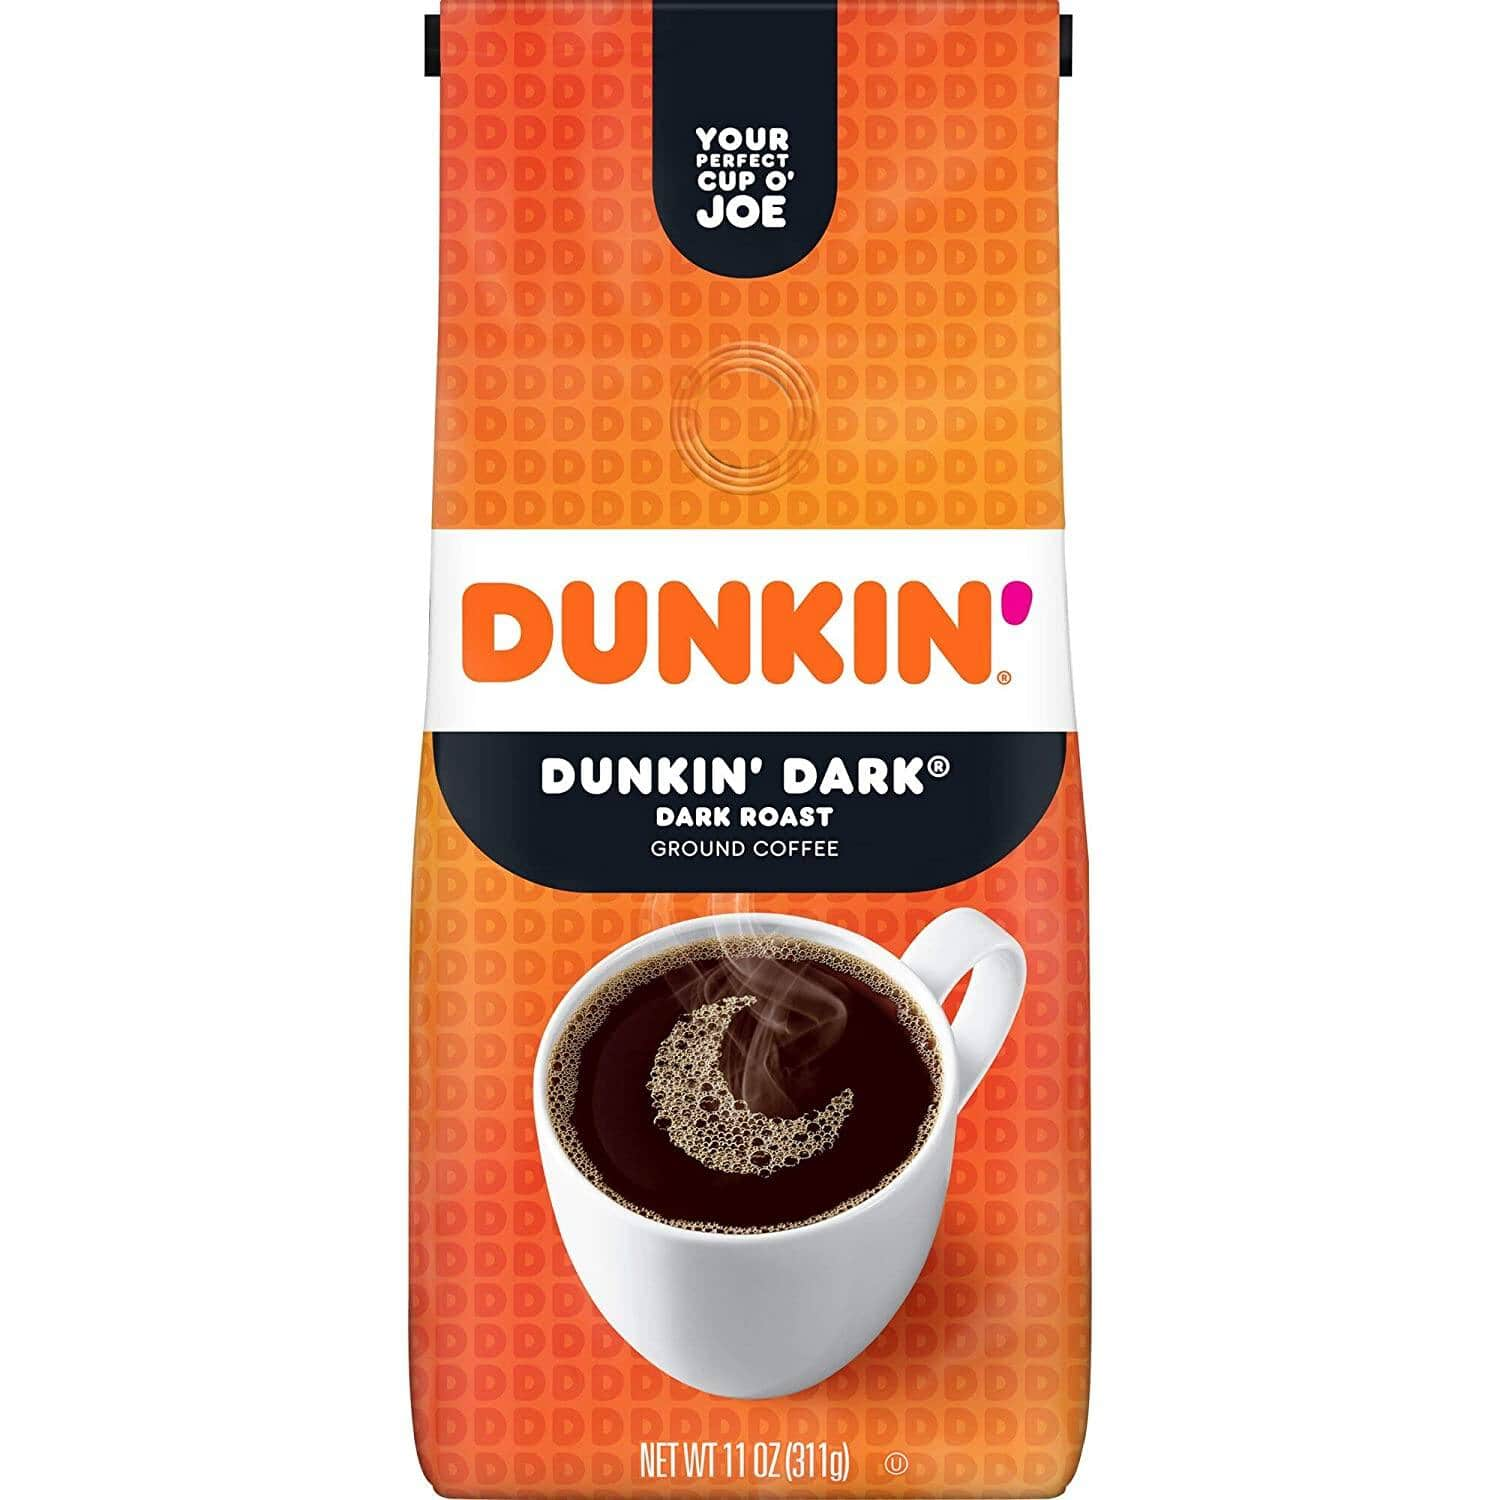 11-Oz Dunkin' Ground Coffee (Dark Roast) $3.67 w/ S&S + Free Shipping w/ Prime or on $25+